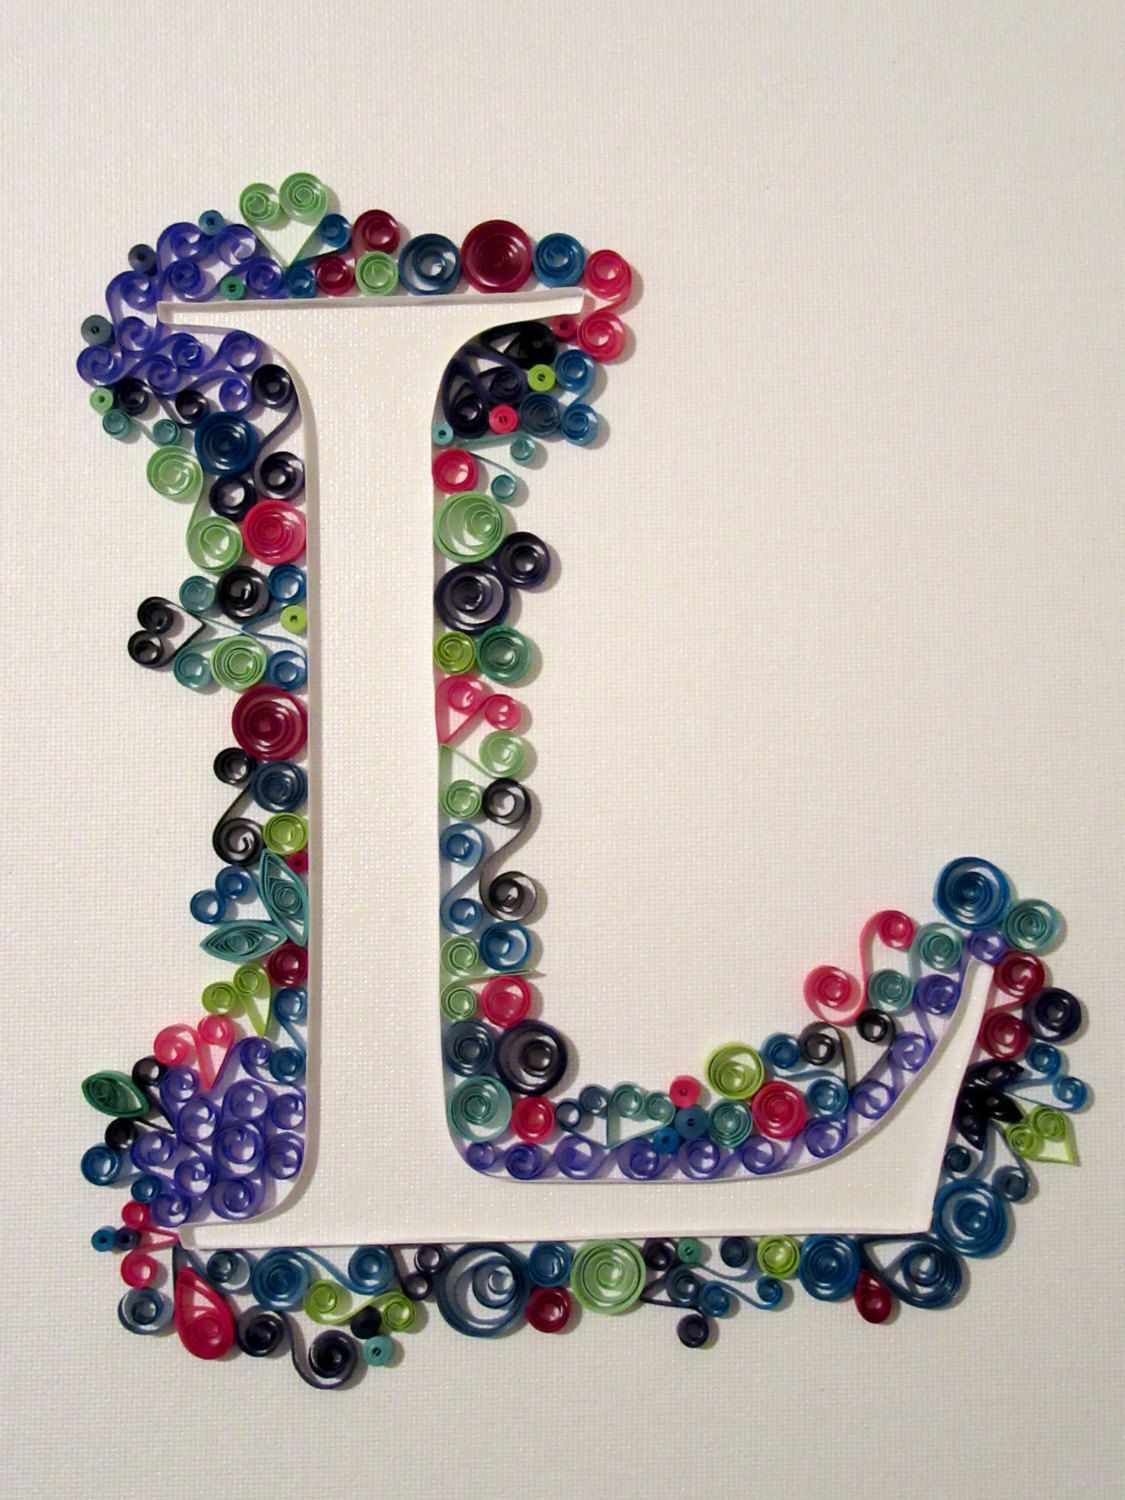 Initial Wall Art quilling paper anniversary, first anniversary gift, paper